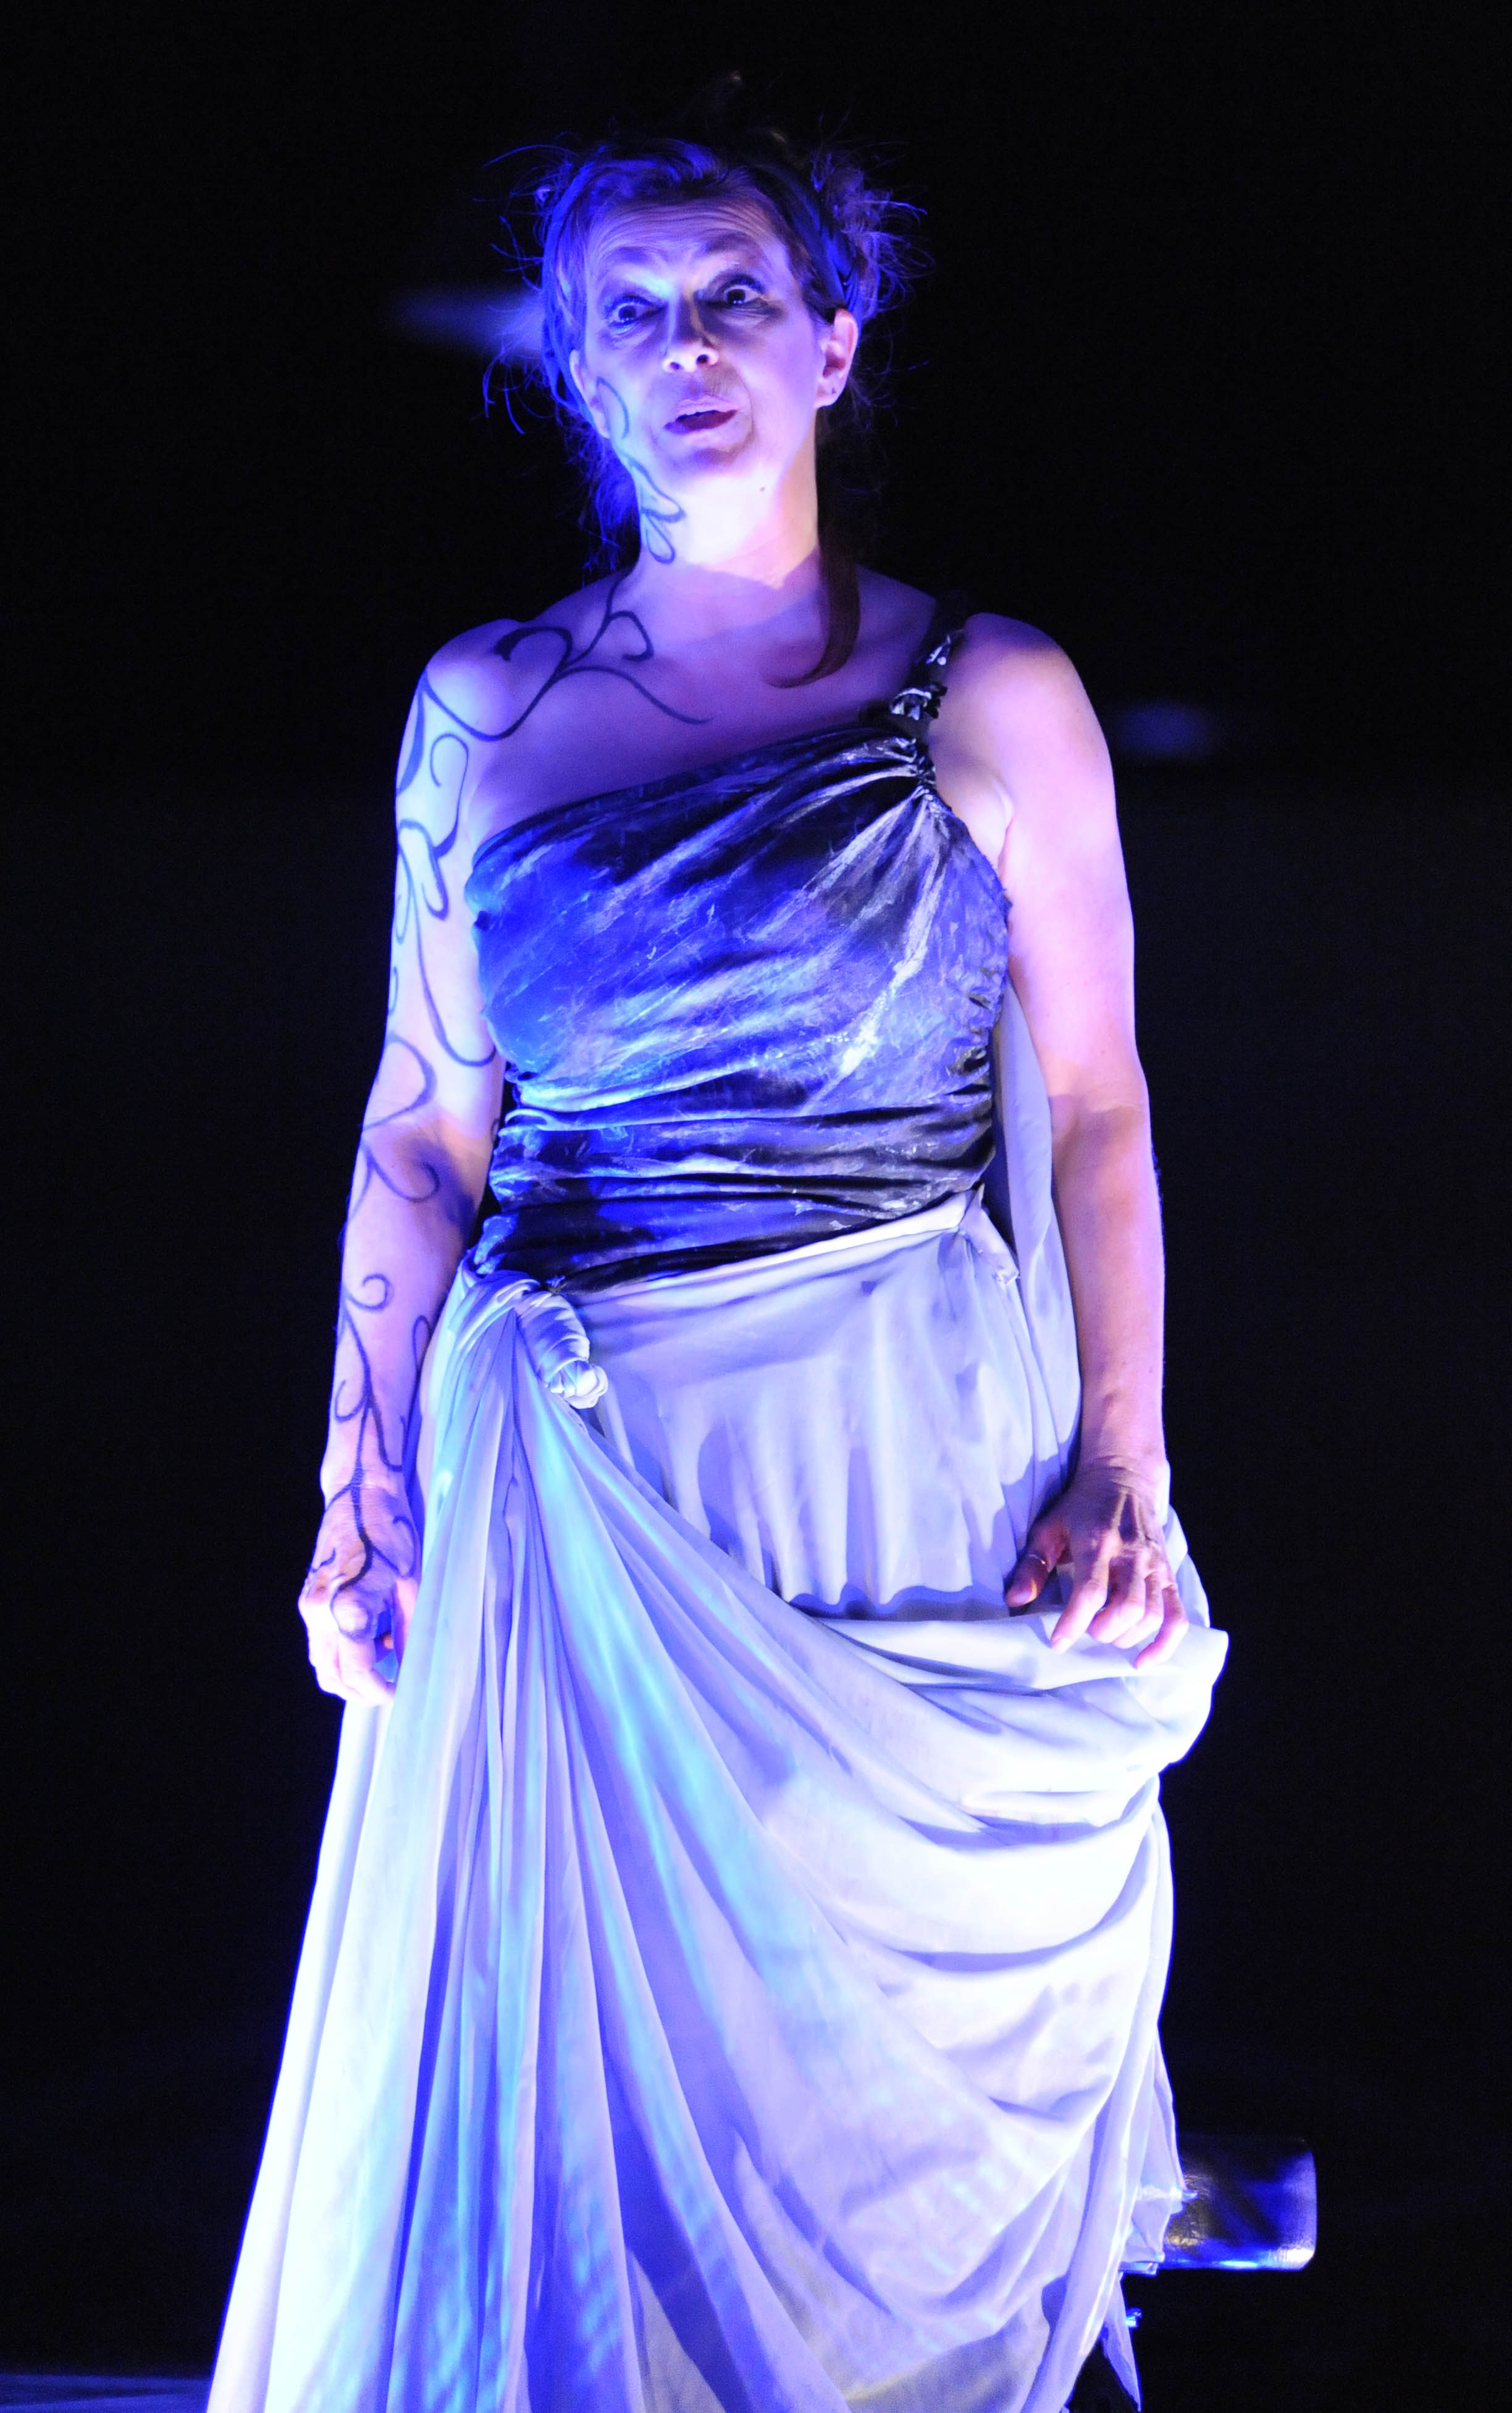 on revenge and medea Medea's revenge demands that a parallel injury be inflicted on her family by marriage as compensation for the injury this marriage inflicted on her family of origin the.